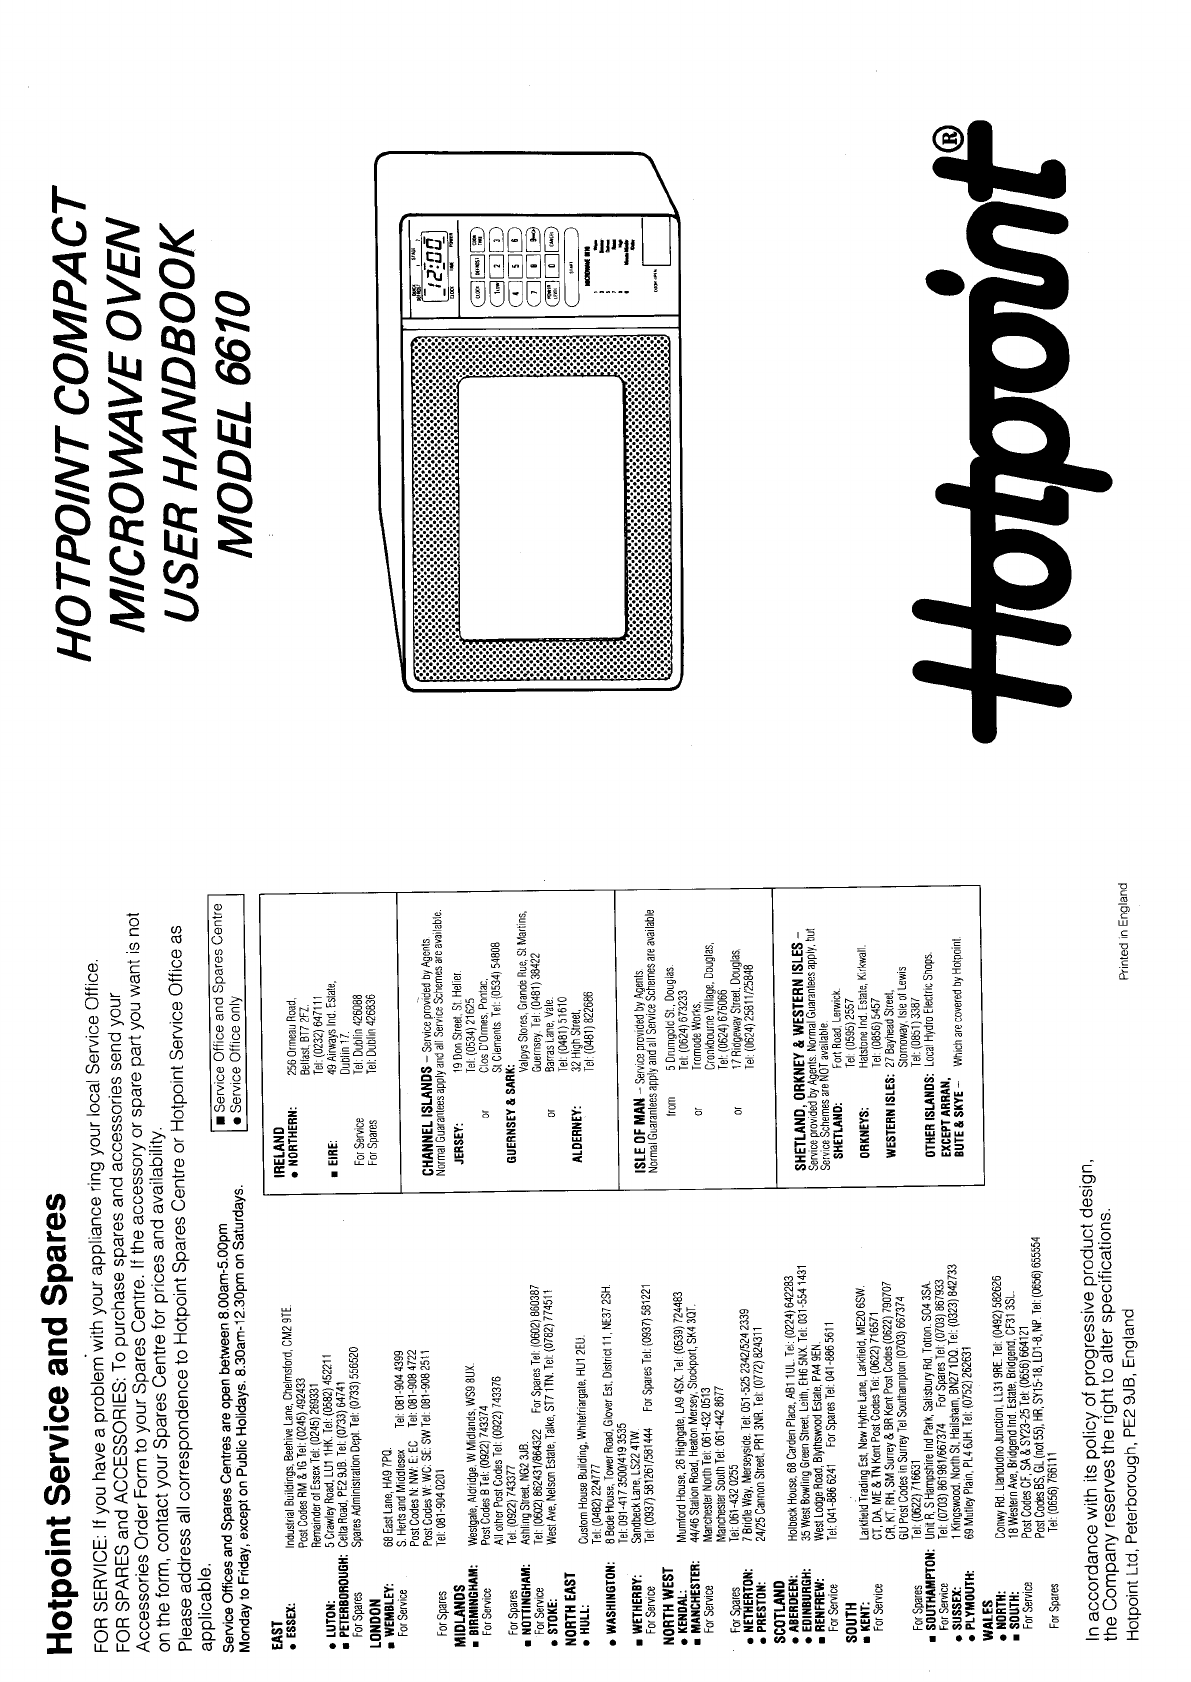 Where can you find Hotpoint user manuals